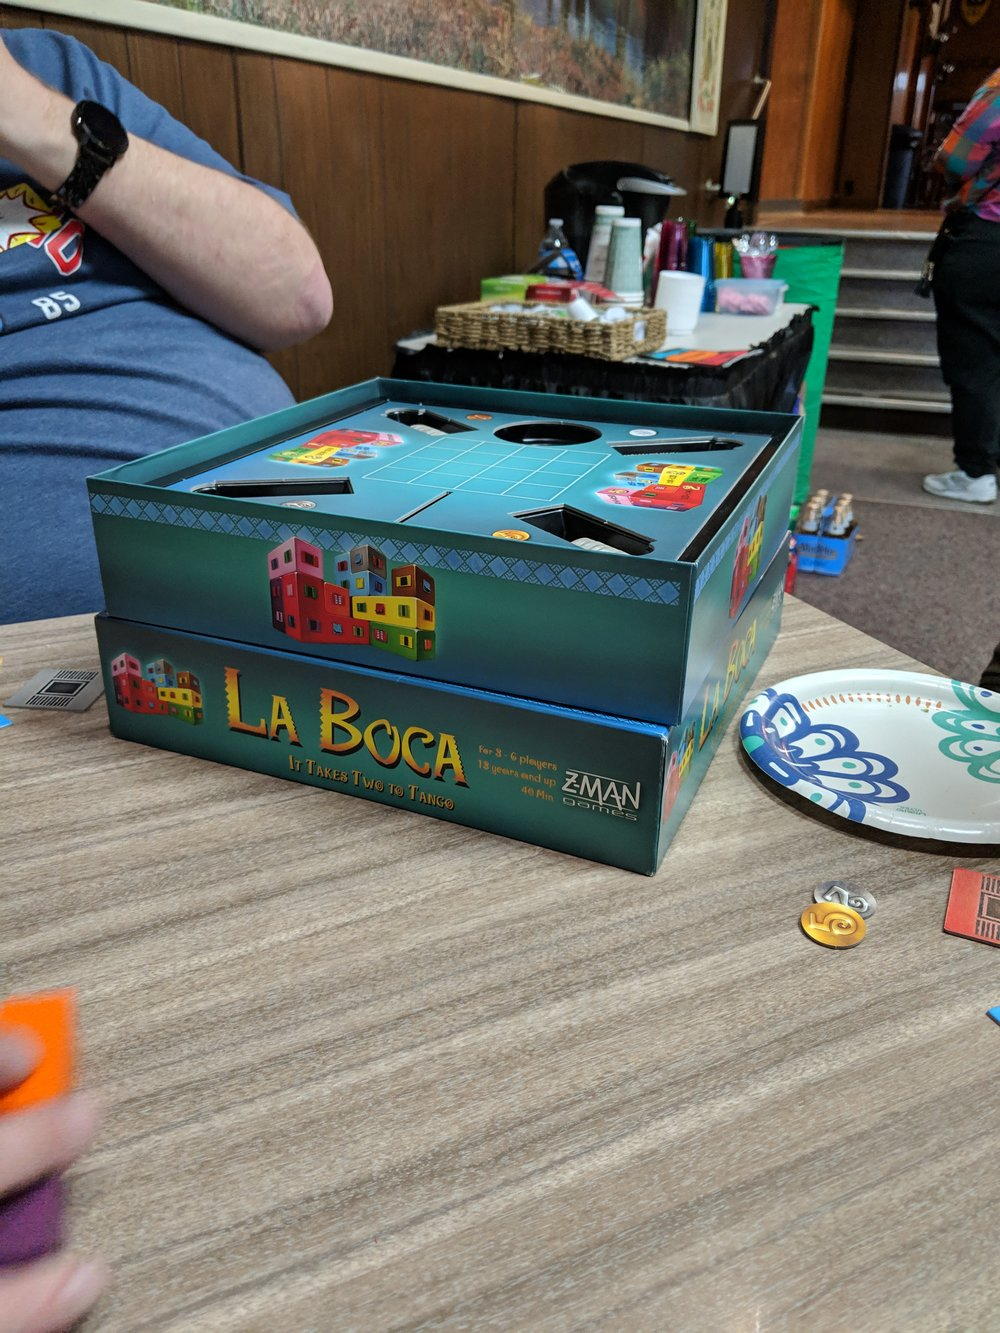 Setting up one of my favorites — La Boca.